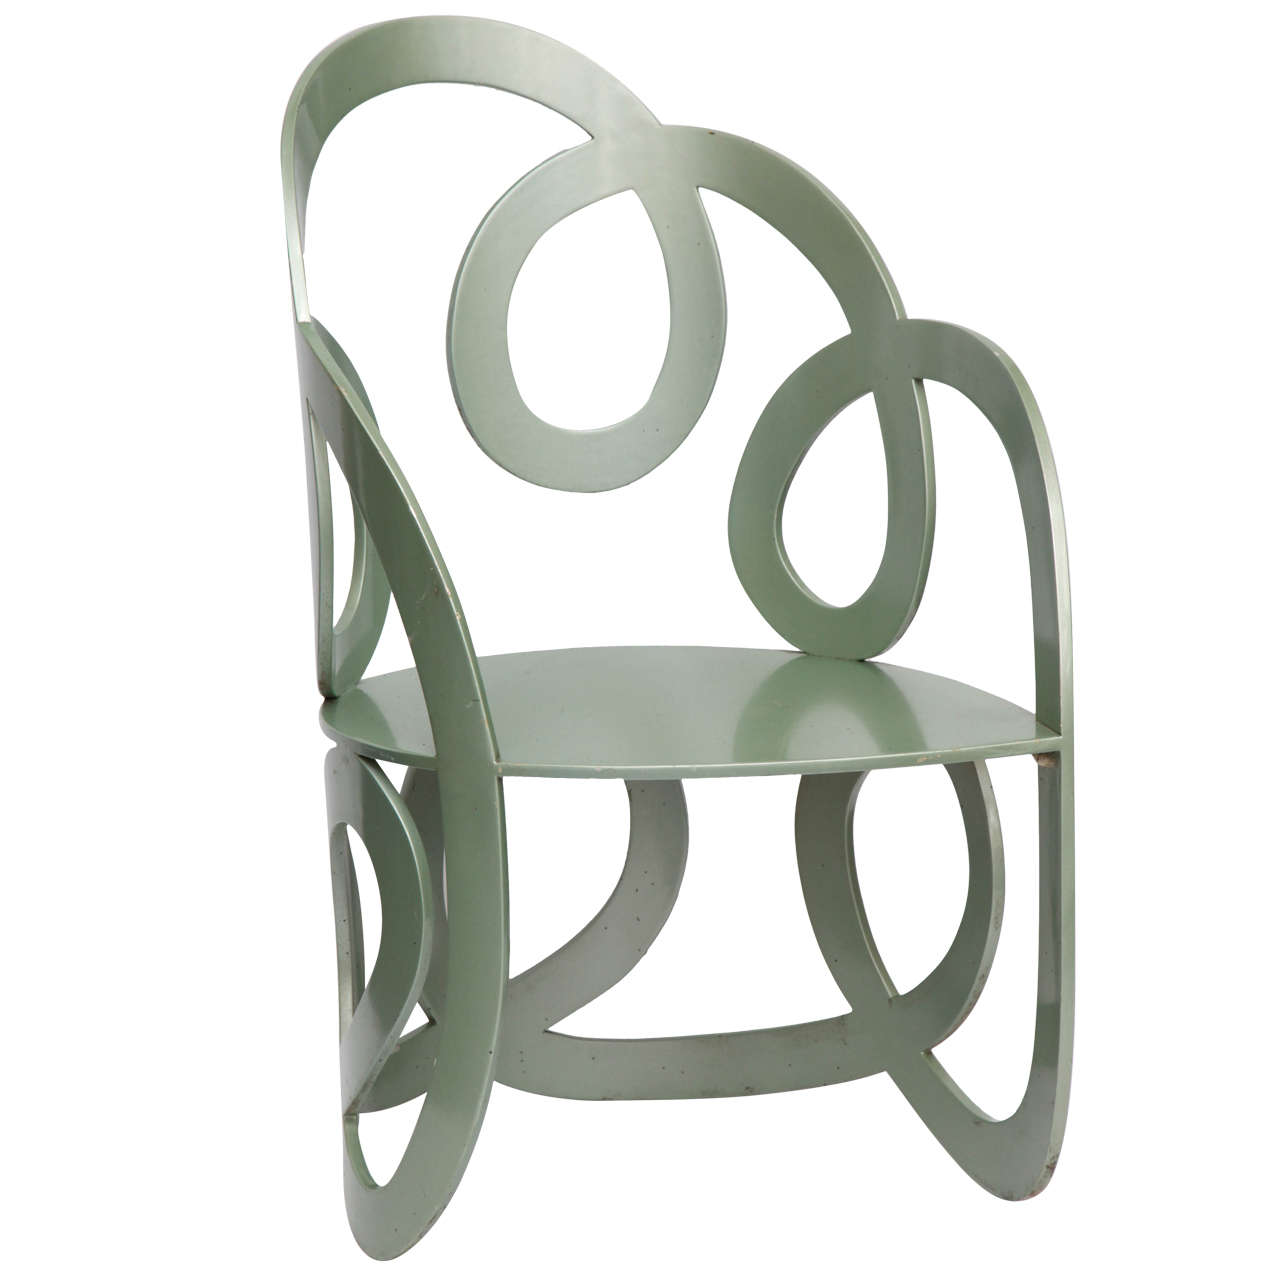 1980s Sculptural Chair Crafted of Painted Metal